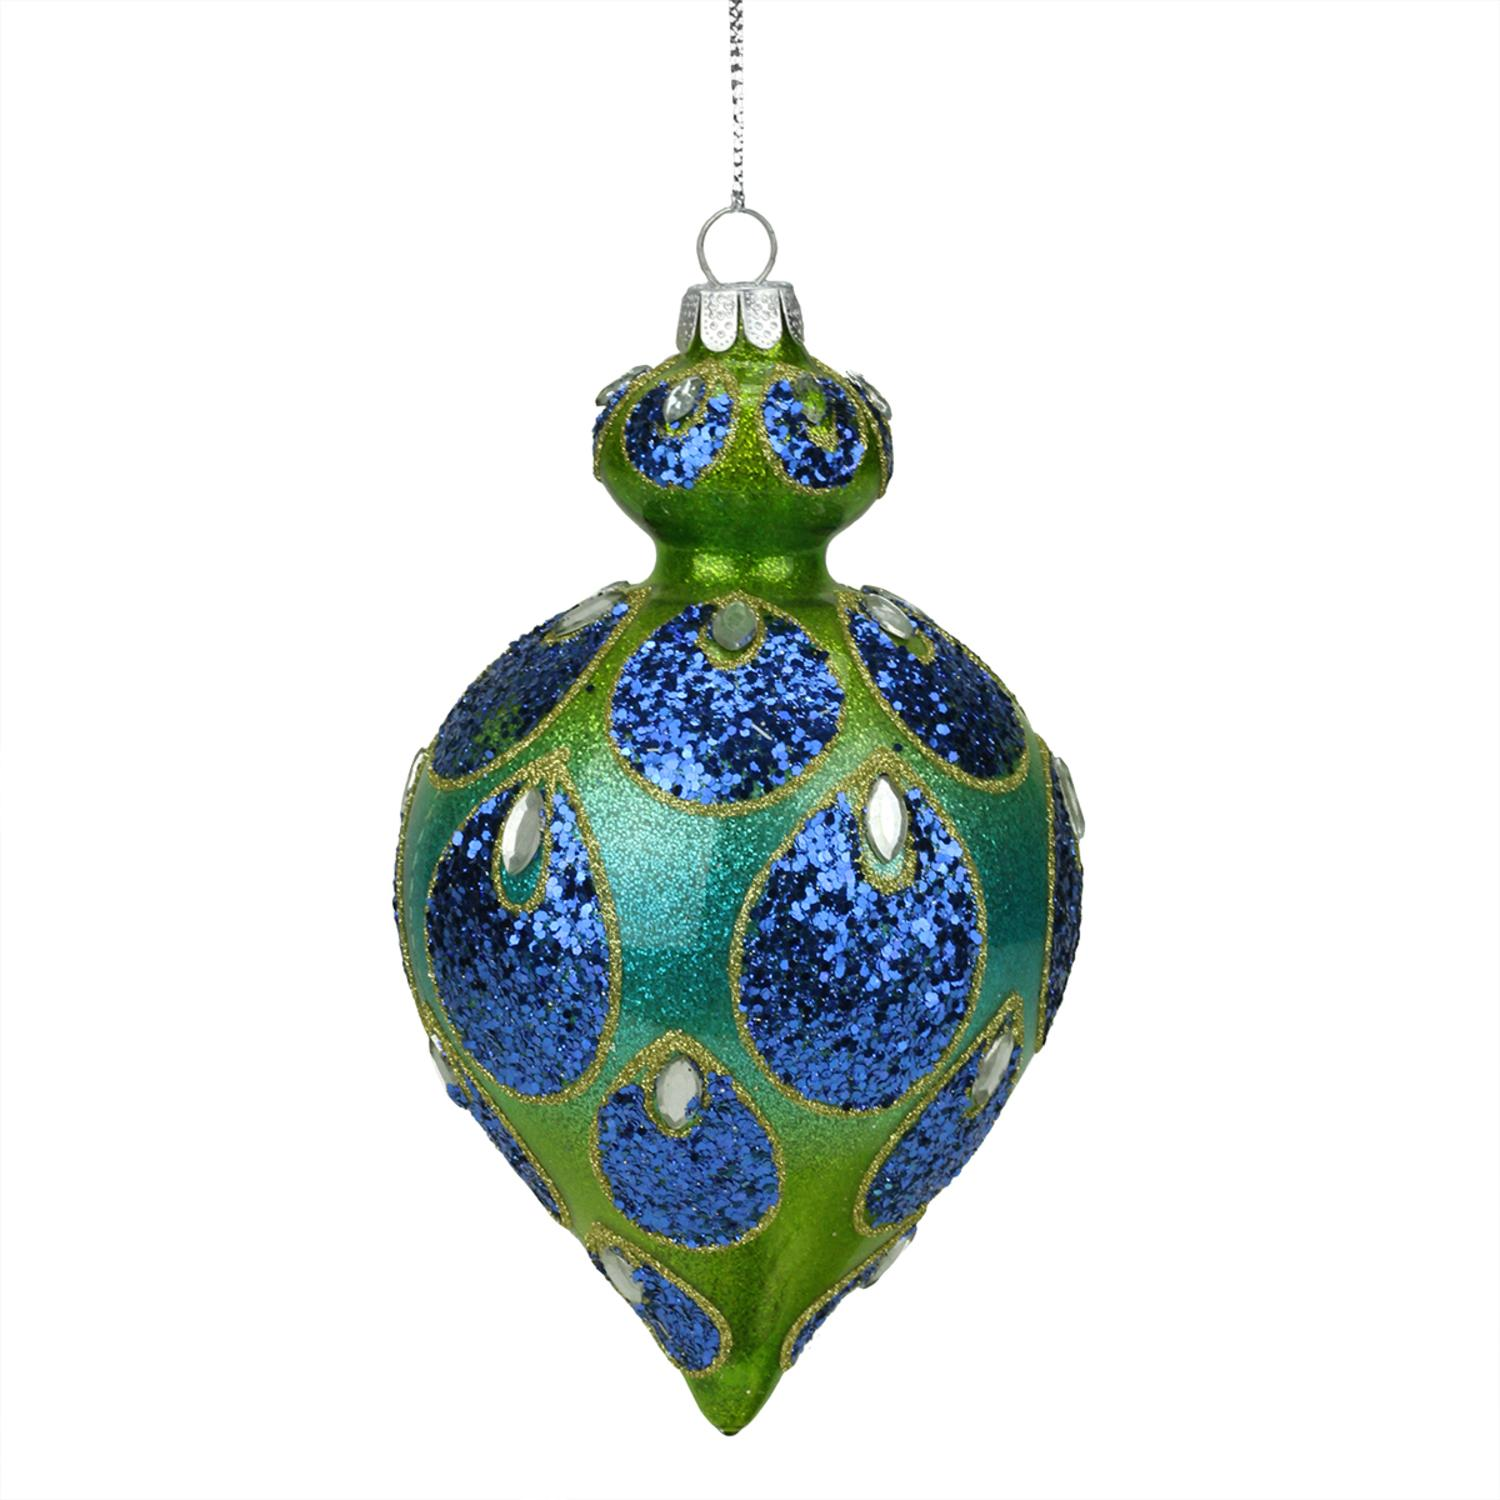 "5.25"" Regal Peacock Blue and Green Glittered Glass Teardrop Finial Christmas Ornament"